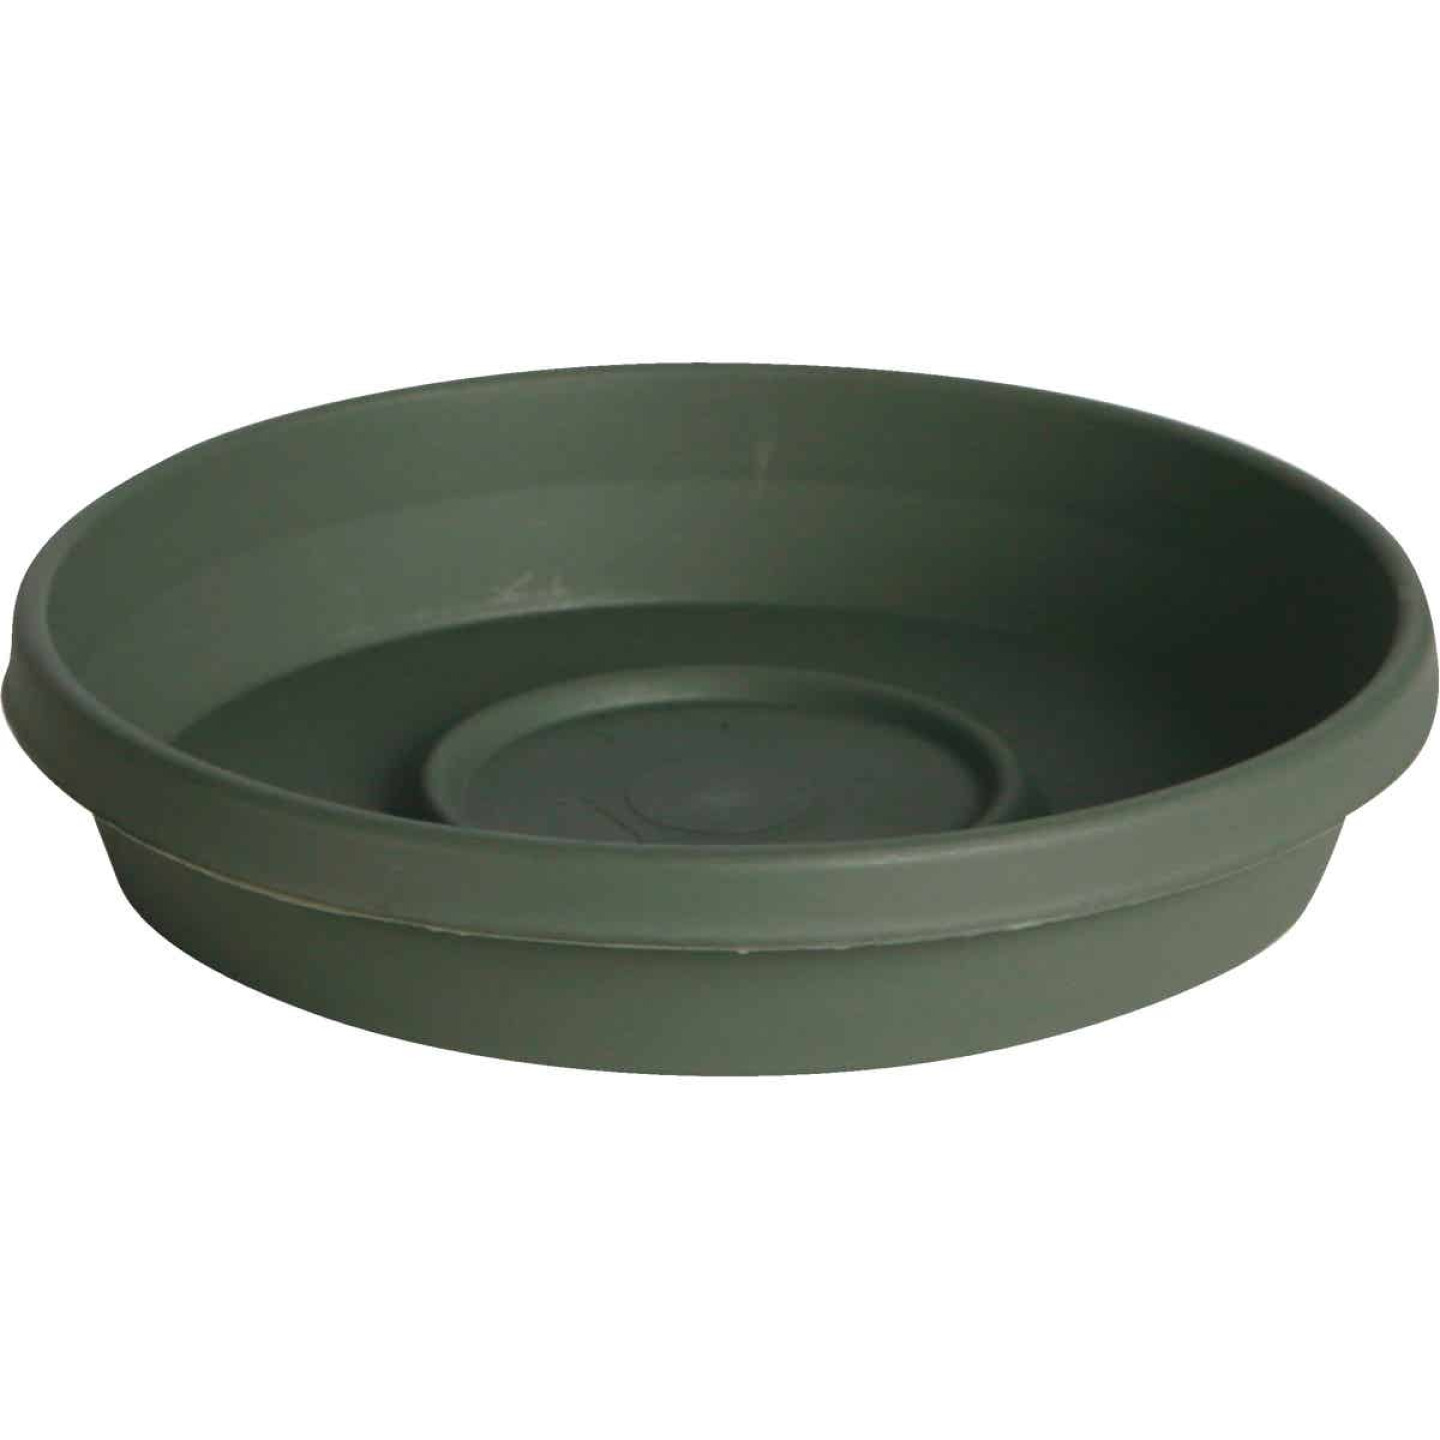 Bloem Terra Living Green 20 In. Plastic Flower Pot Saucer Image 1